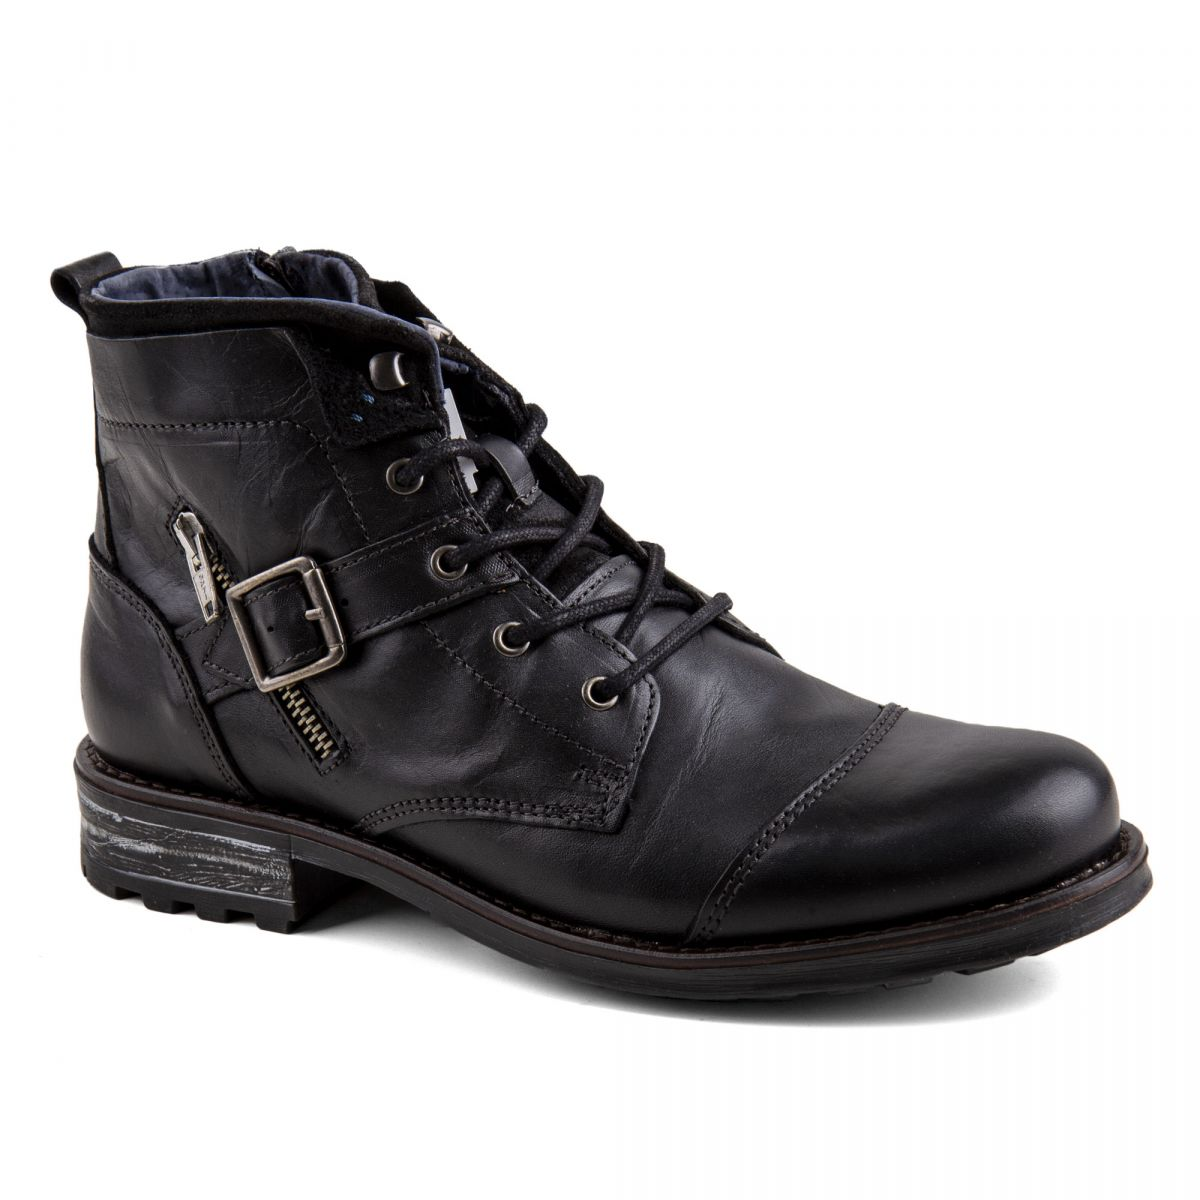 bottines en cuir homme destockage